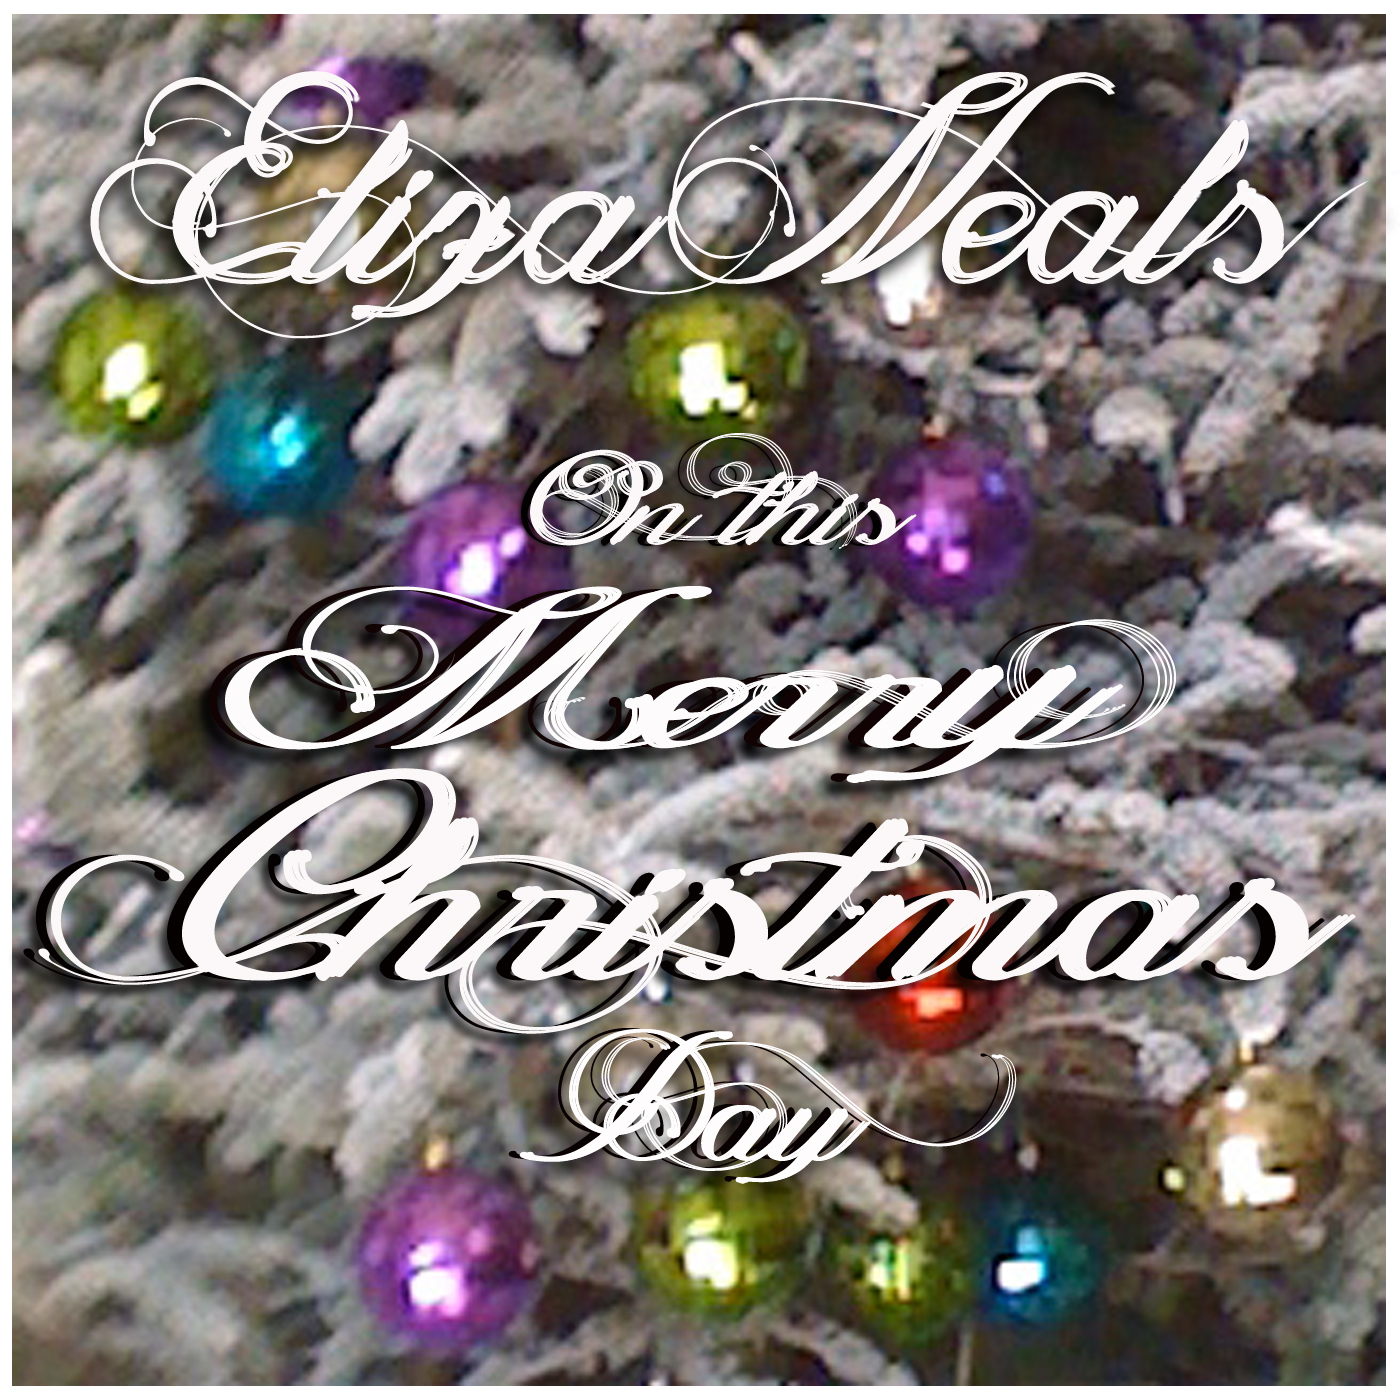 on this merry christmas day cover final 1400 - Christmas Blues Songs